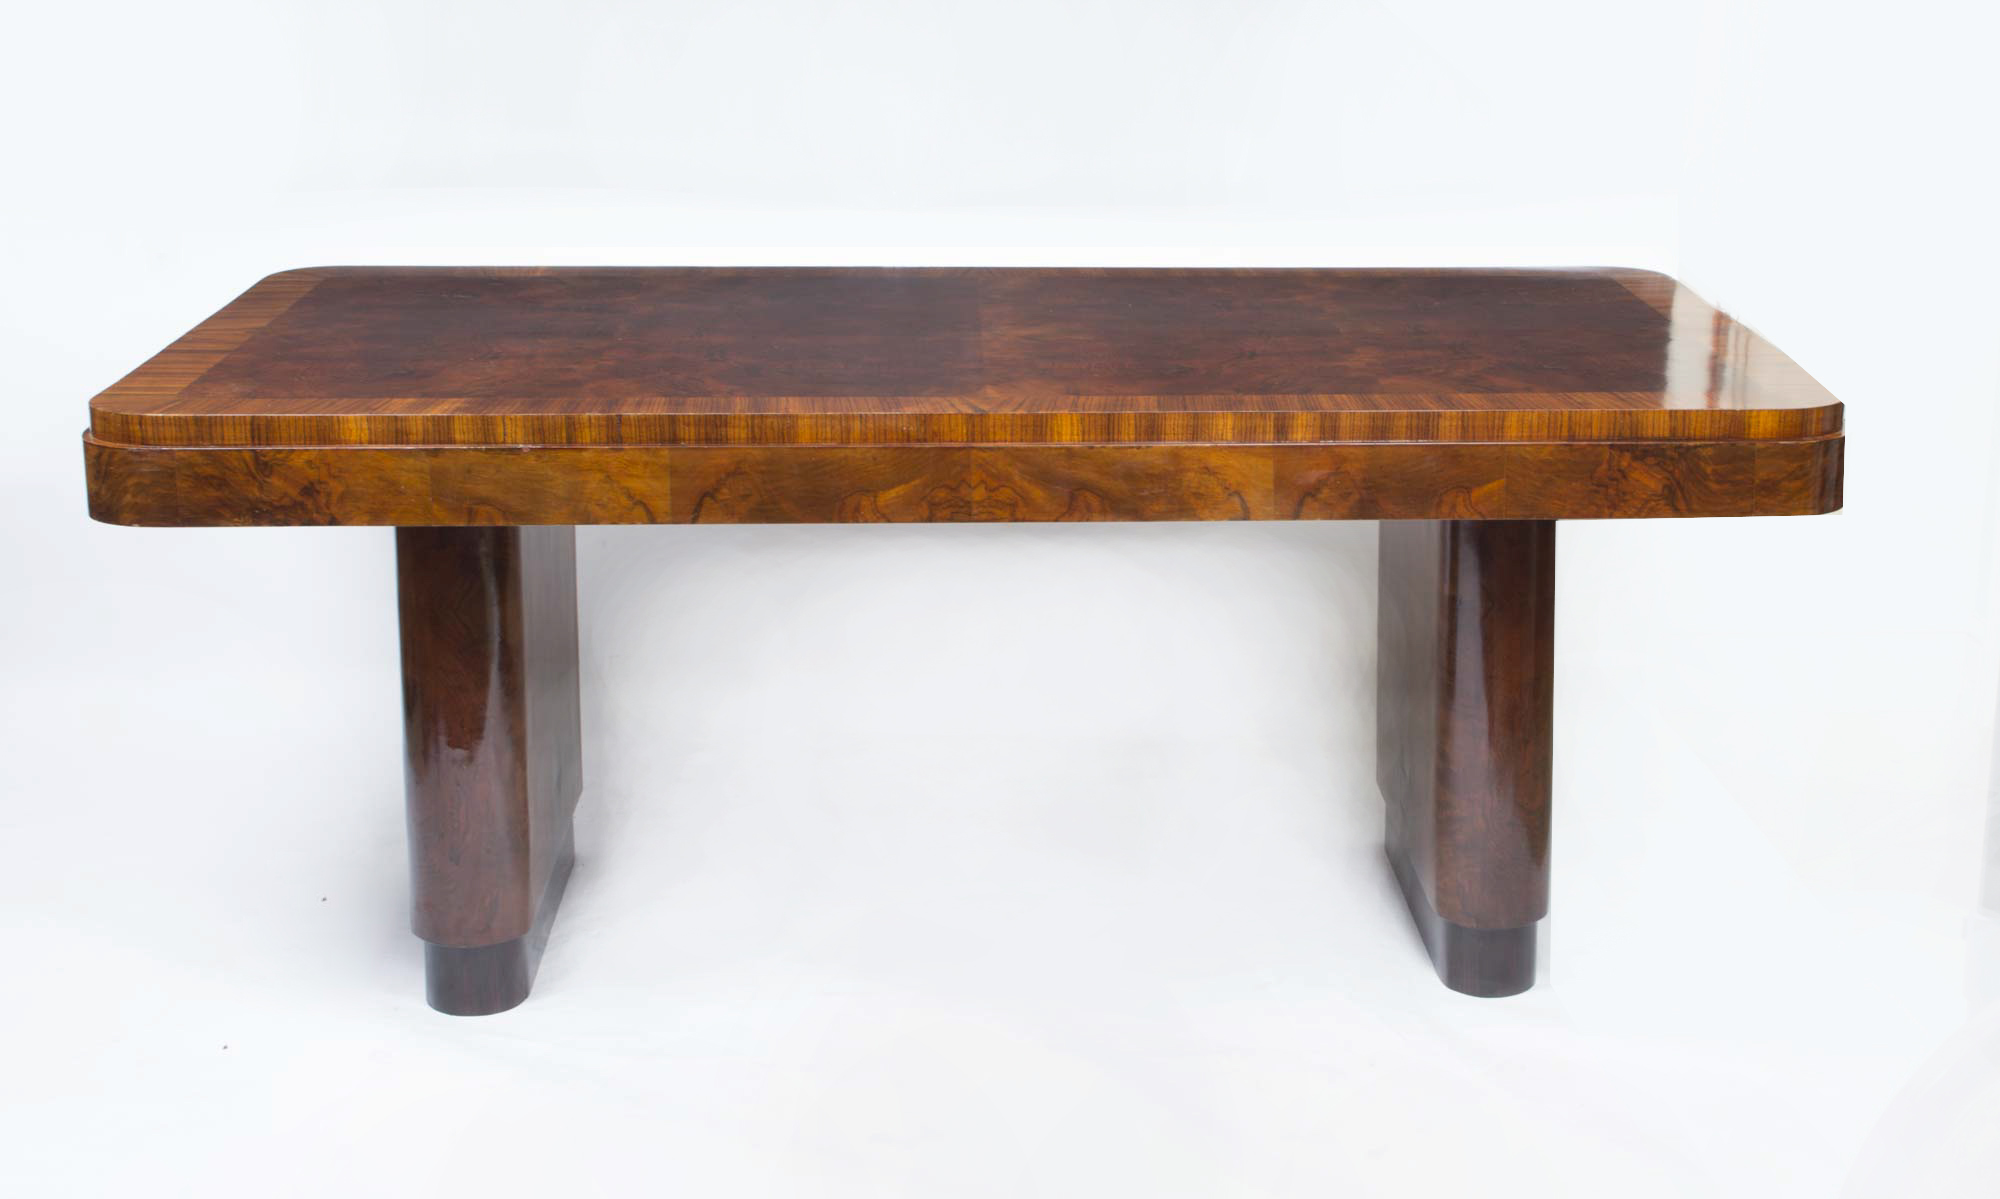 Rosewood Dining Table Art Deco Dining Table Six Chairs Circa 1920 Art Deco